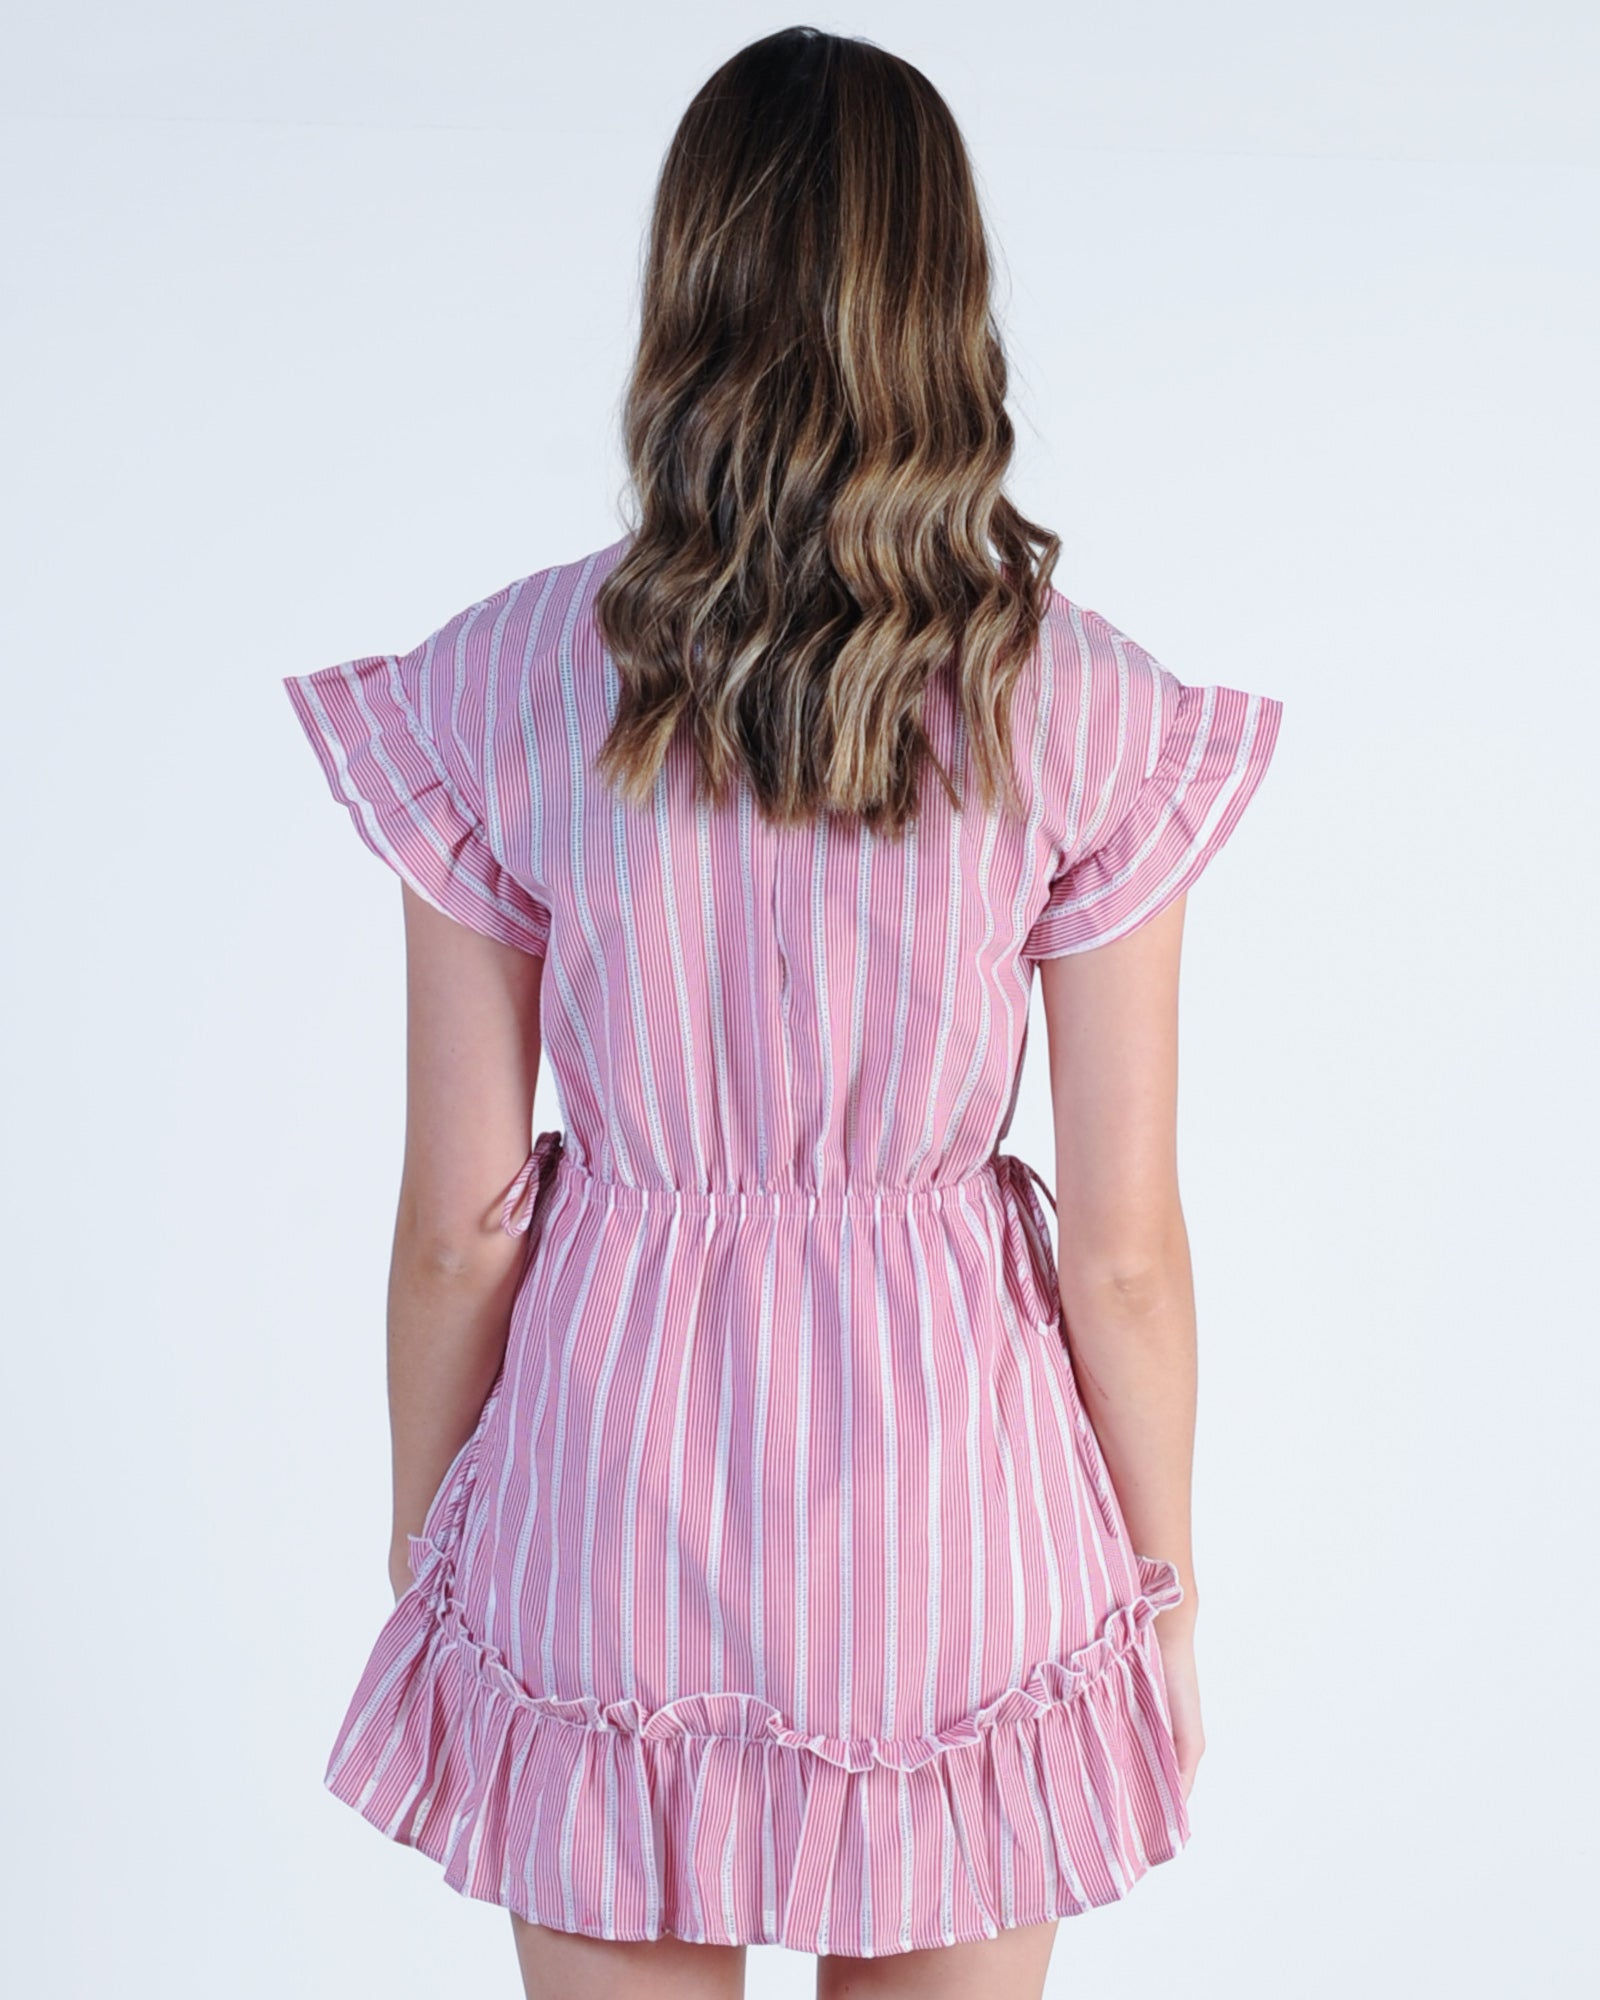 The Fifth Label Kite Stripe Dress - Red White